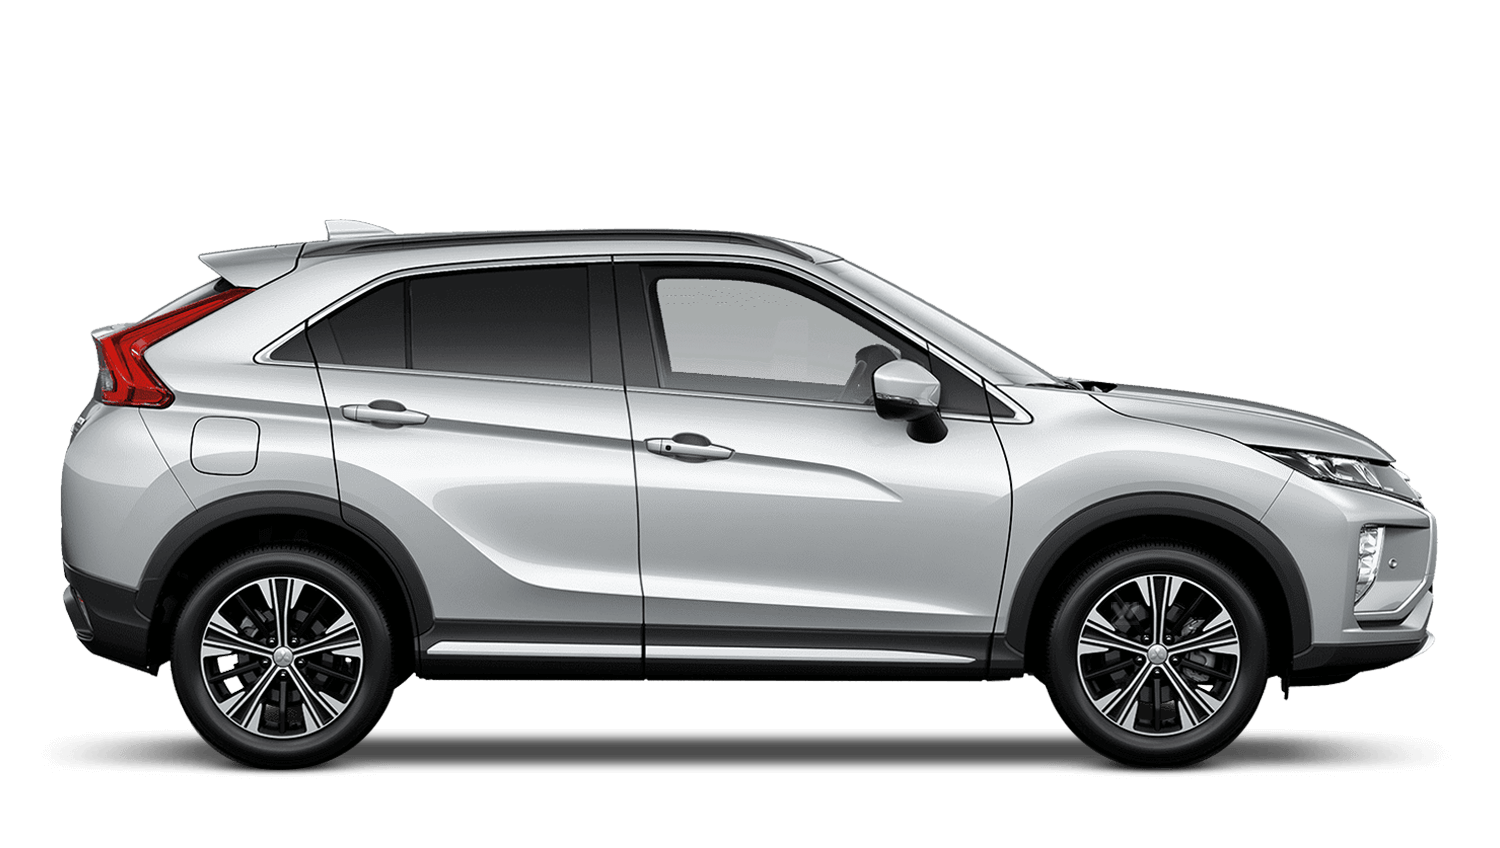 Sterling Silver Mitsubishi Eclipse Cross